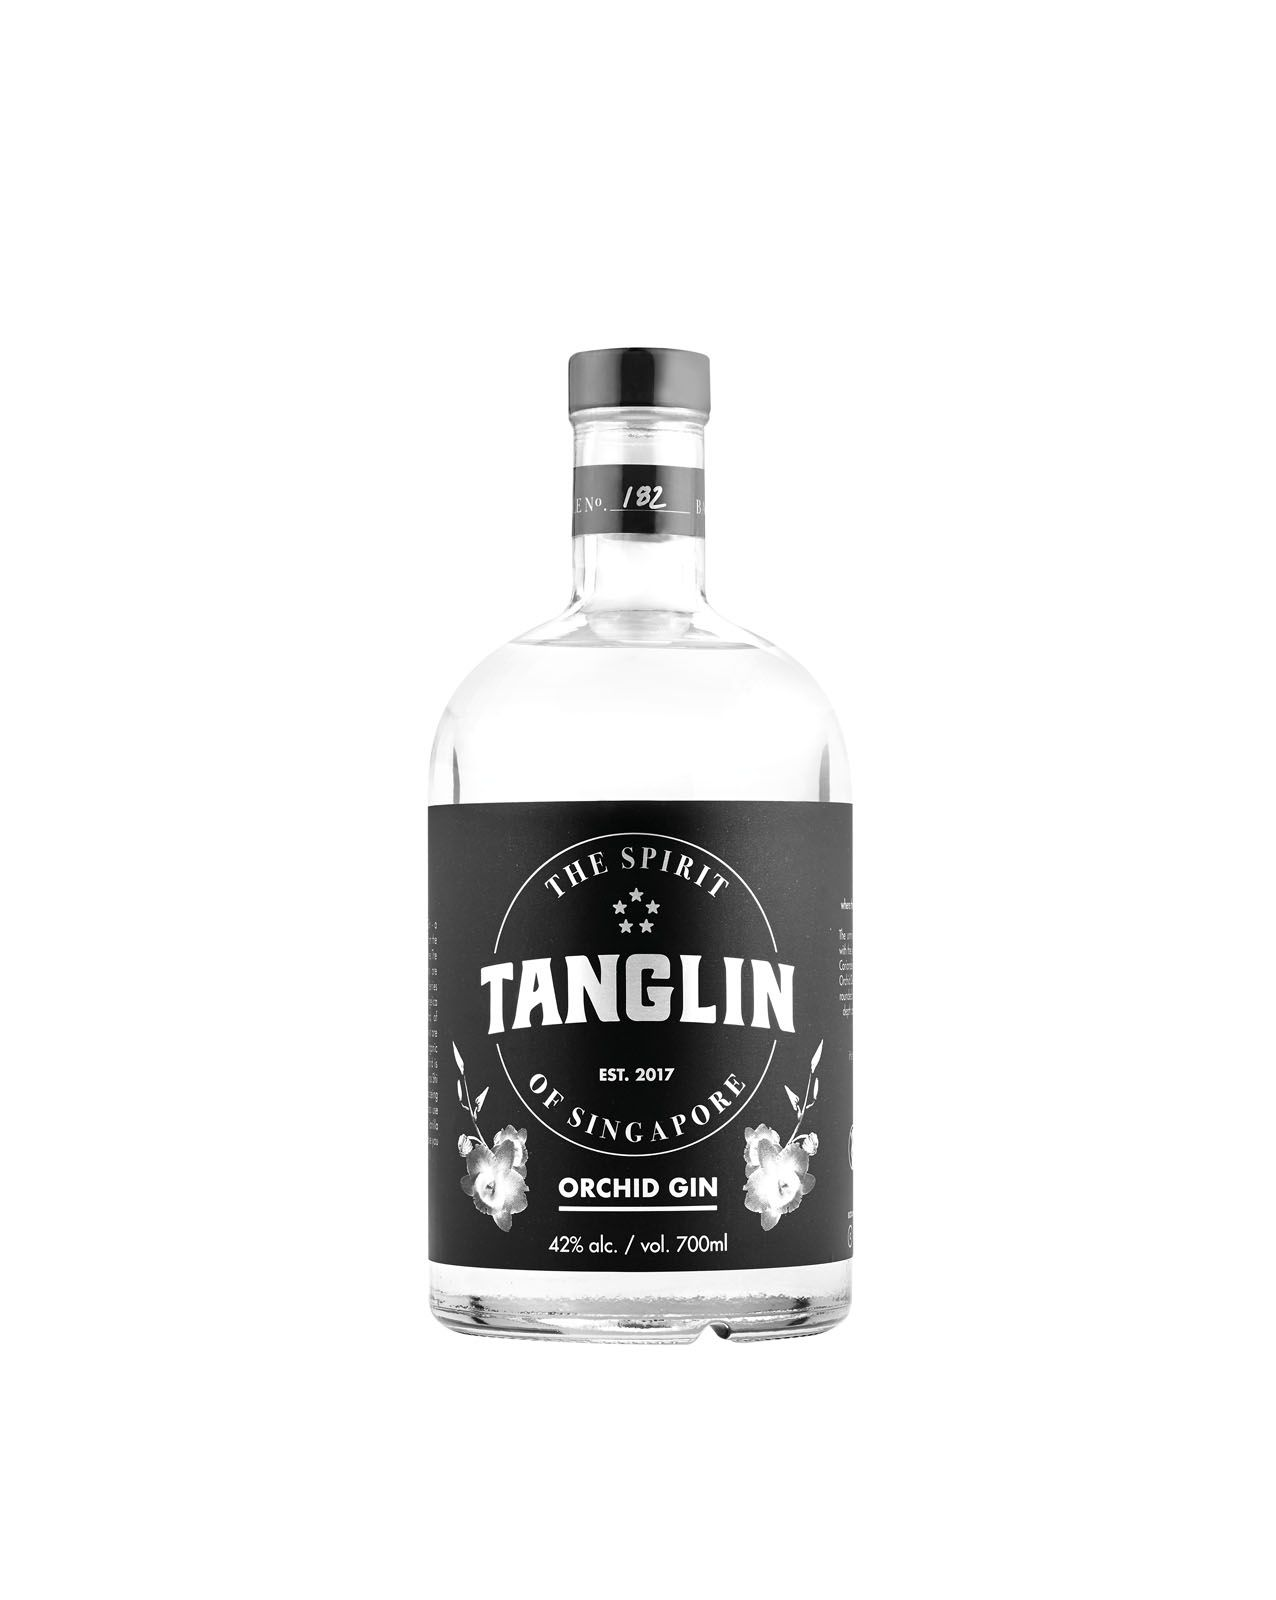 Tanglin Gin's Maiden Gin Wins Silver At The 2019 San Francisco World Spirits Competition